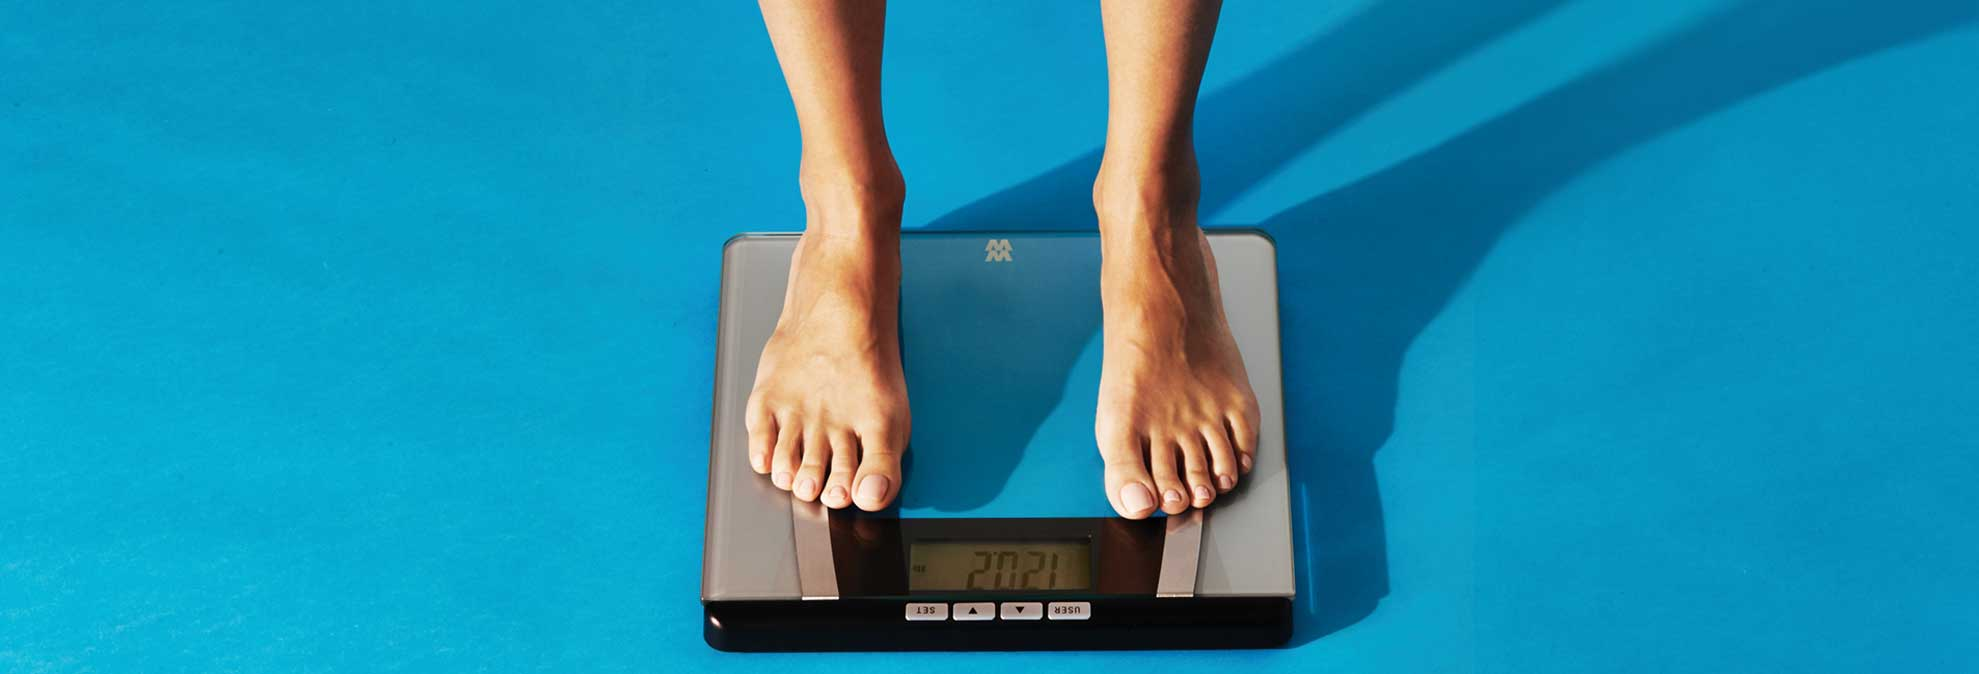 . Best Scale Buying Guide   Consumer Reports